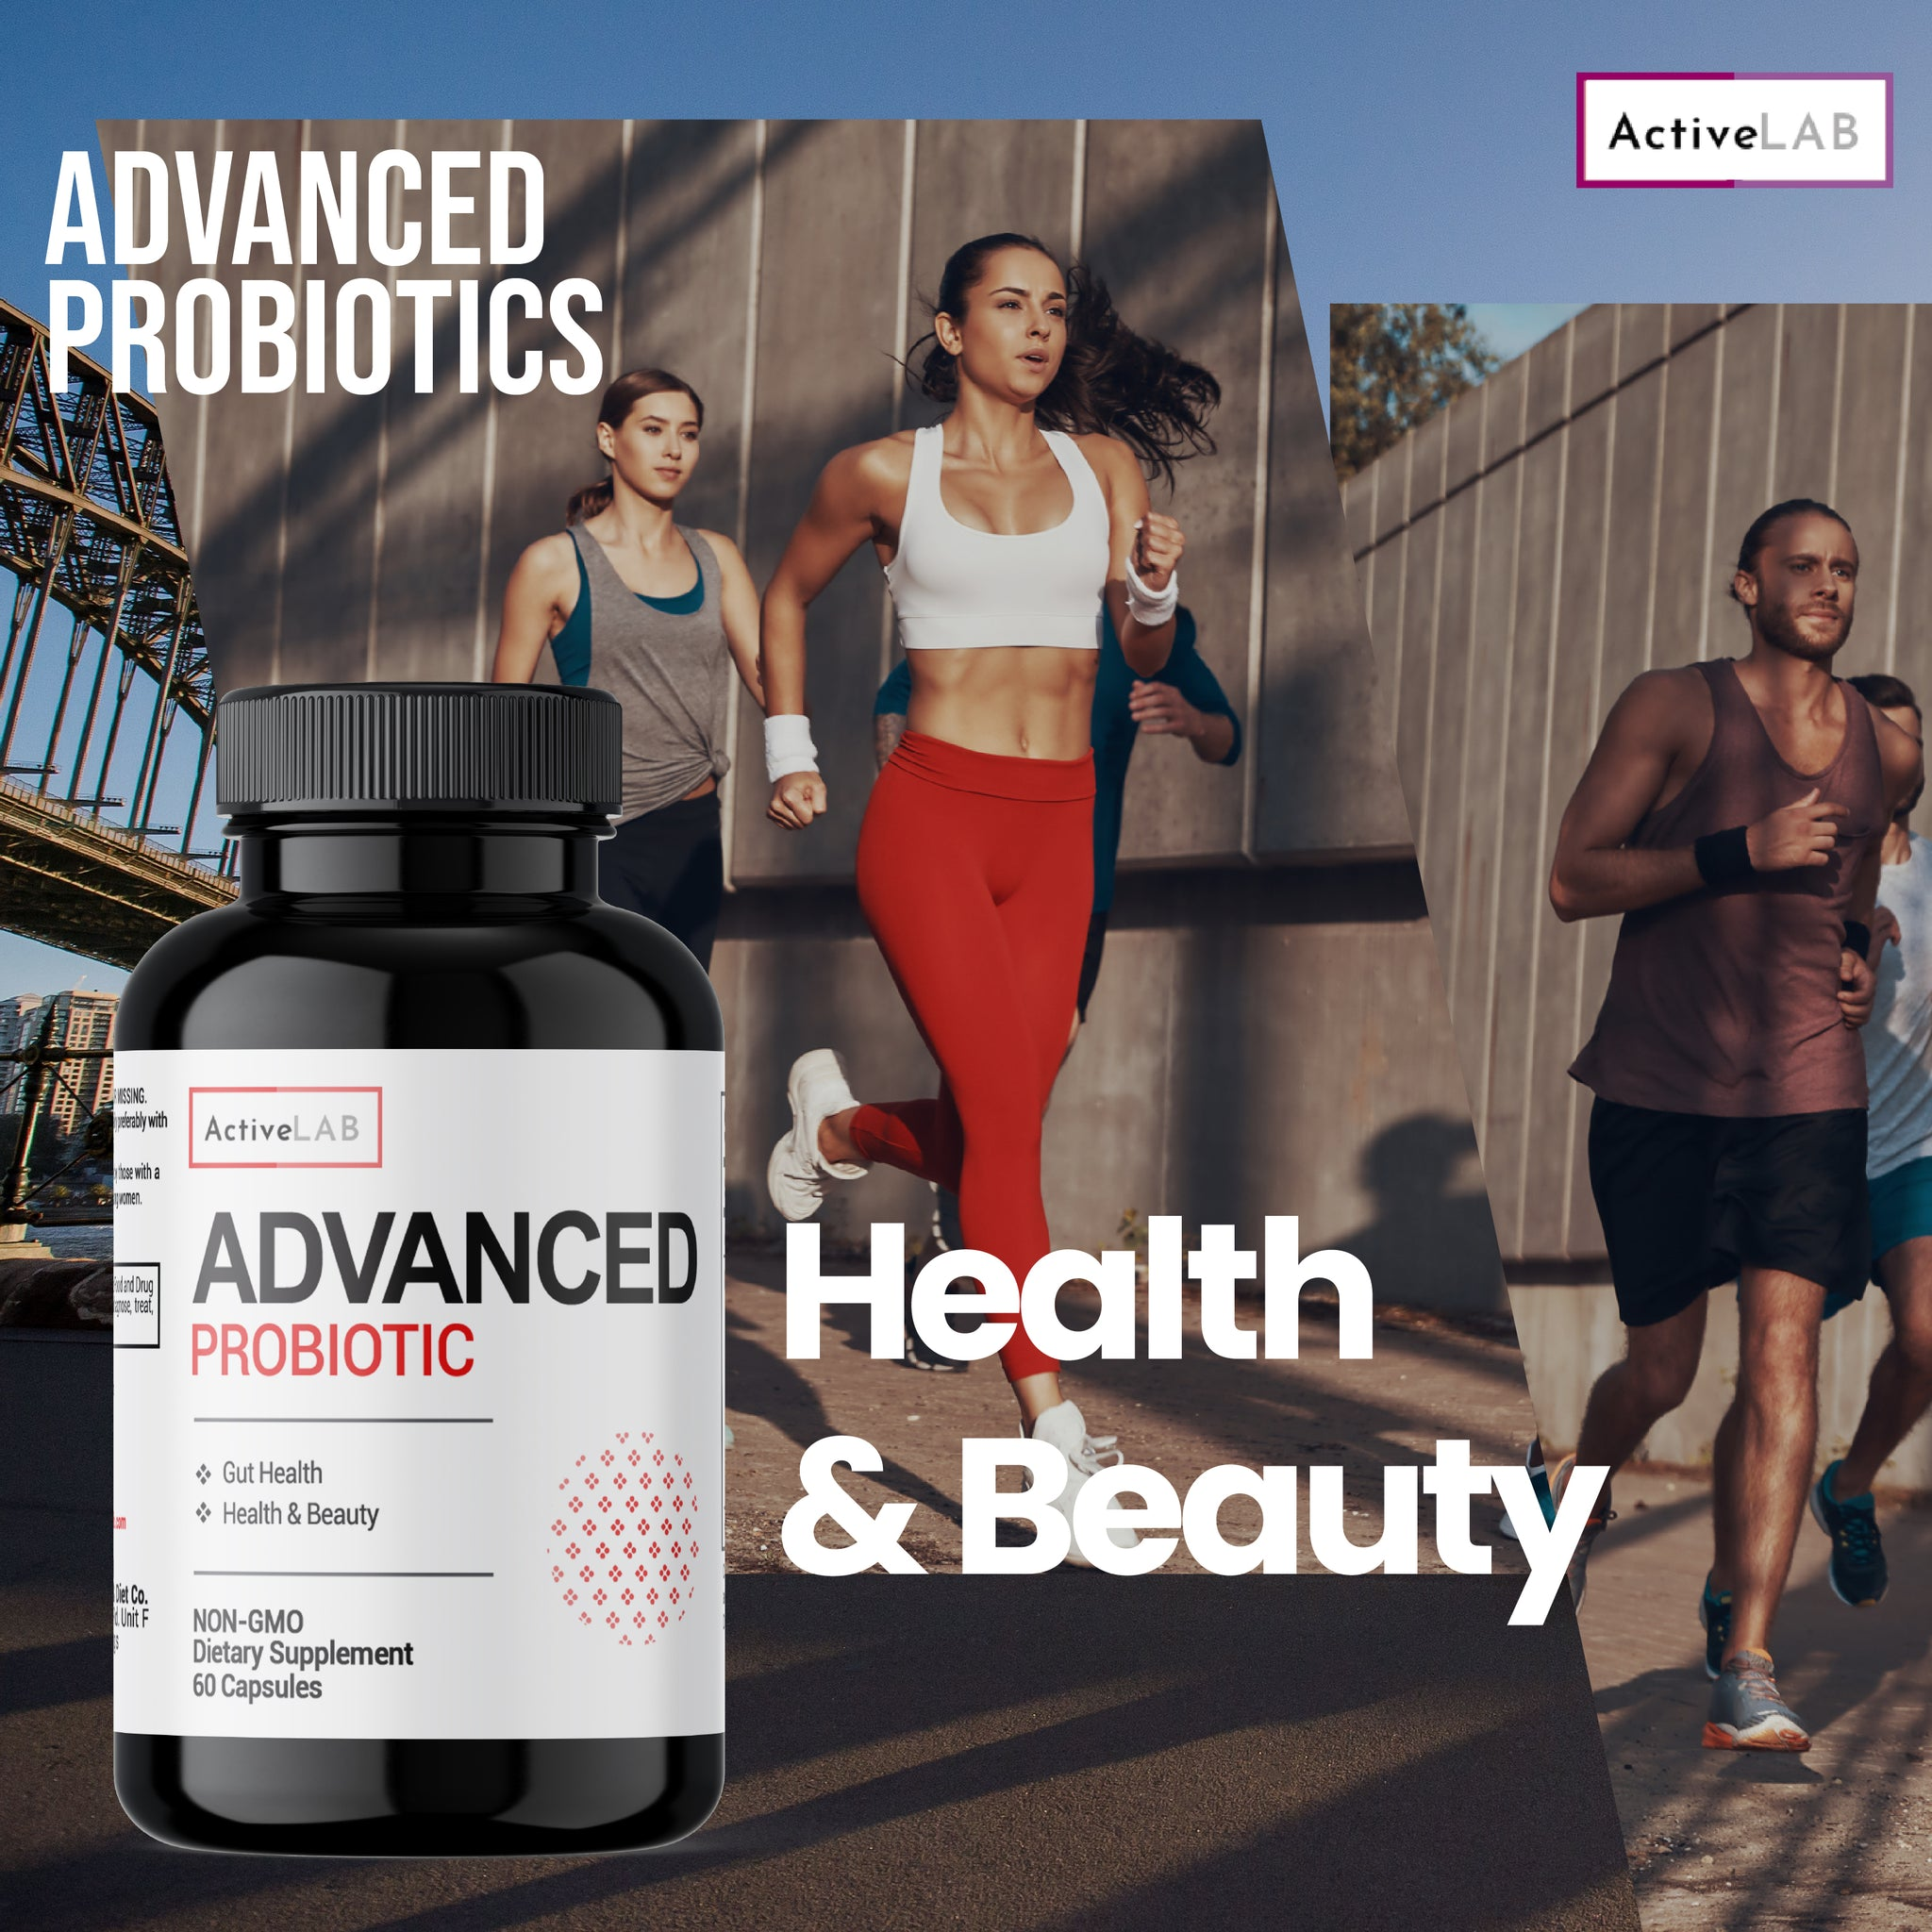 Advanced Probiotic